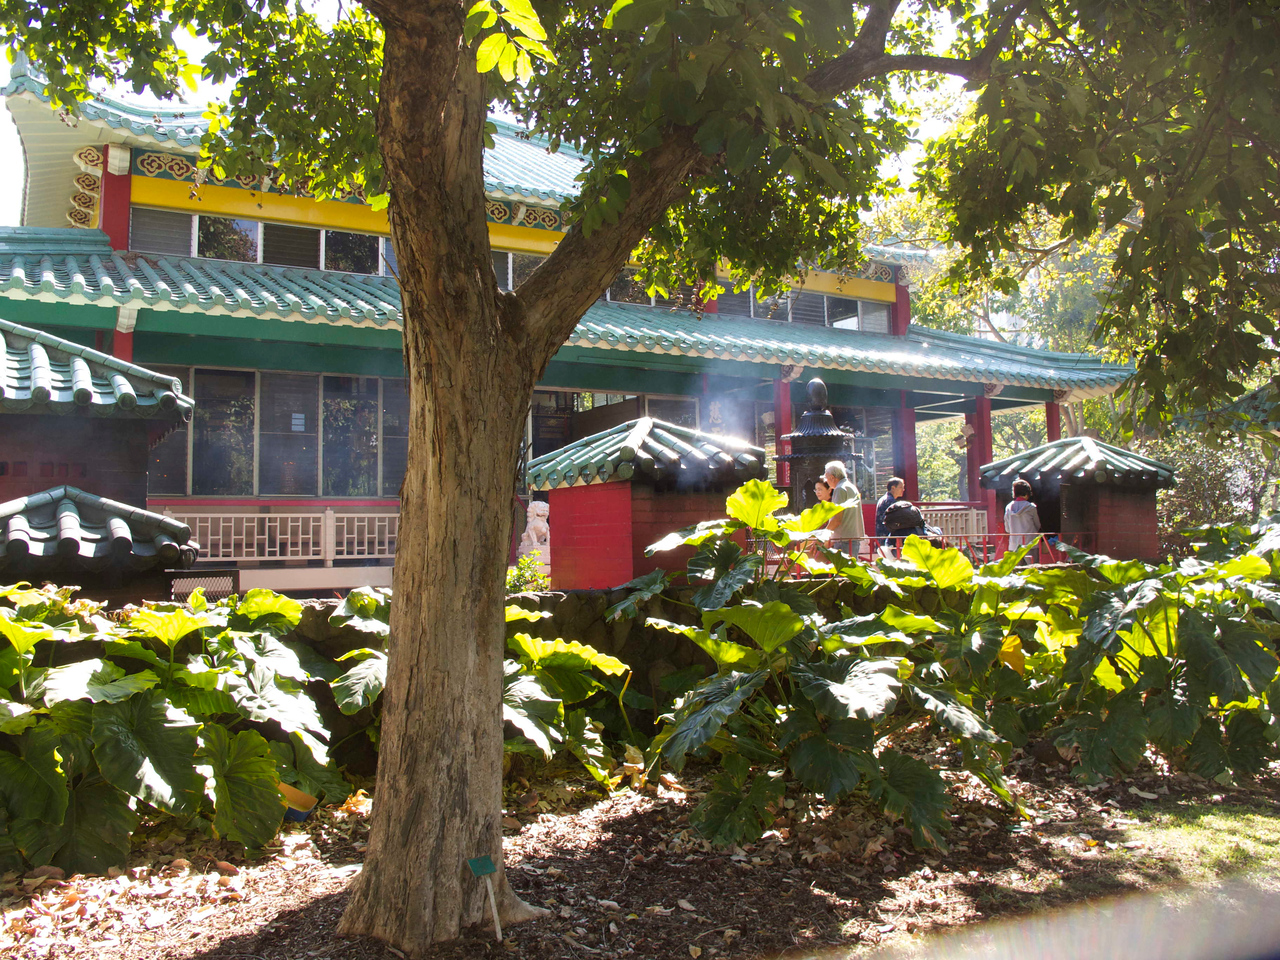 Kuan Yin Temple and the smoke from incense wafting on the gentle breeze.